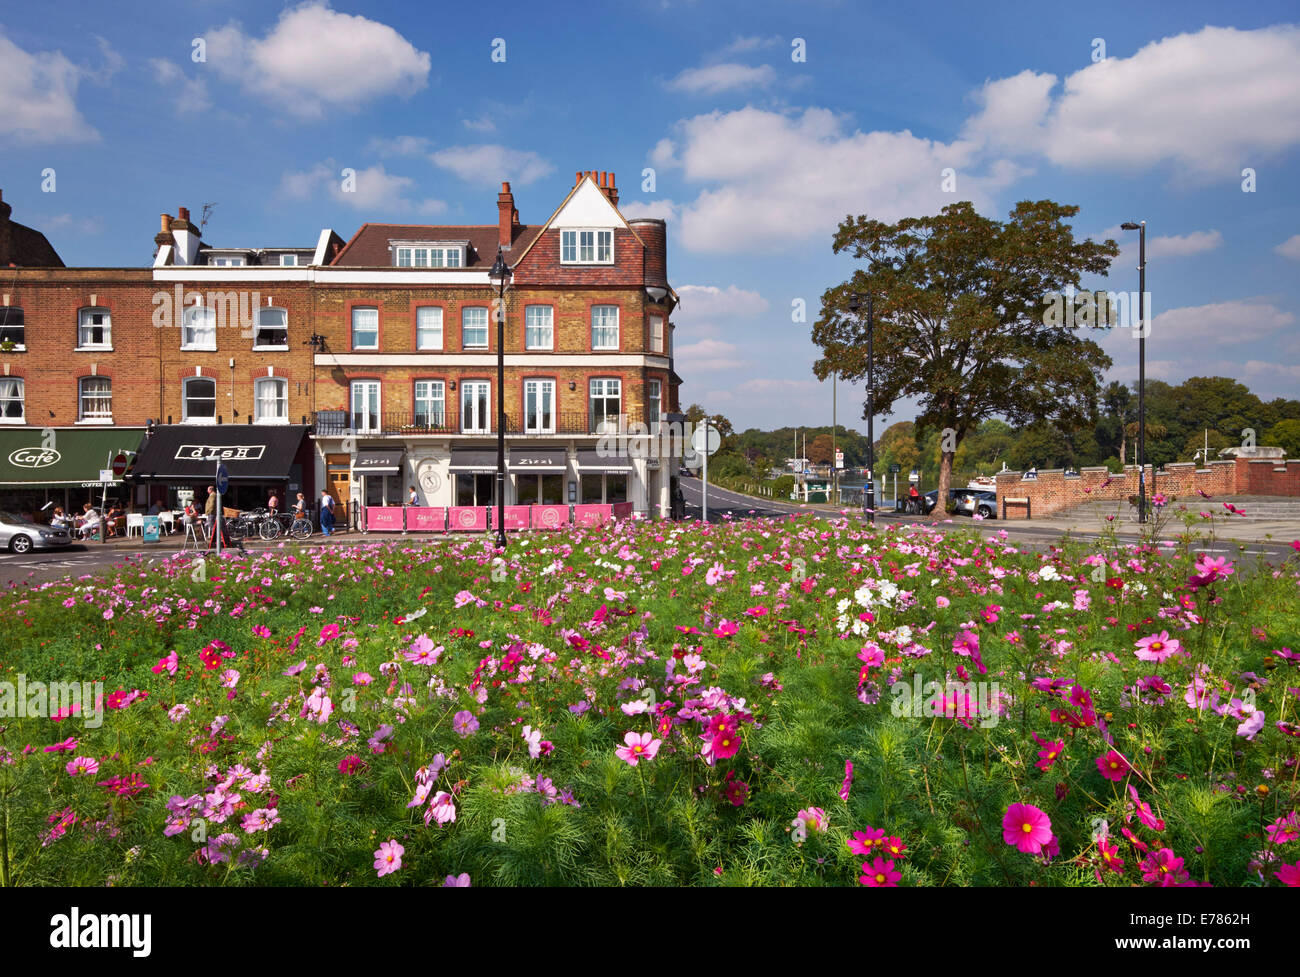 Cosmos flowers on a traffic island by the River Thames at Hampton Court Bridge. East Molesey, Surrey, England. - Stock Image